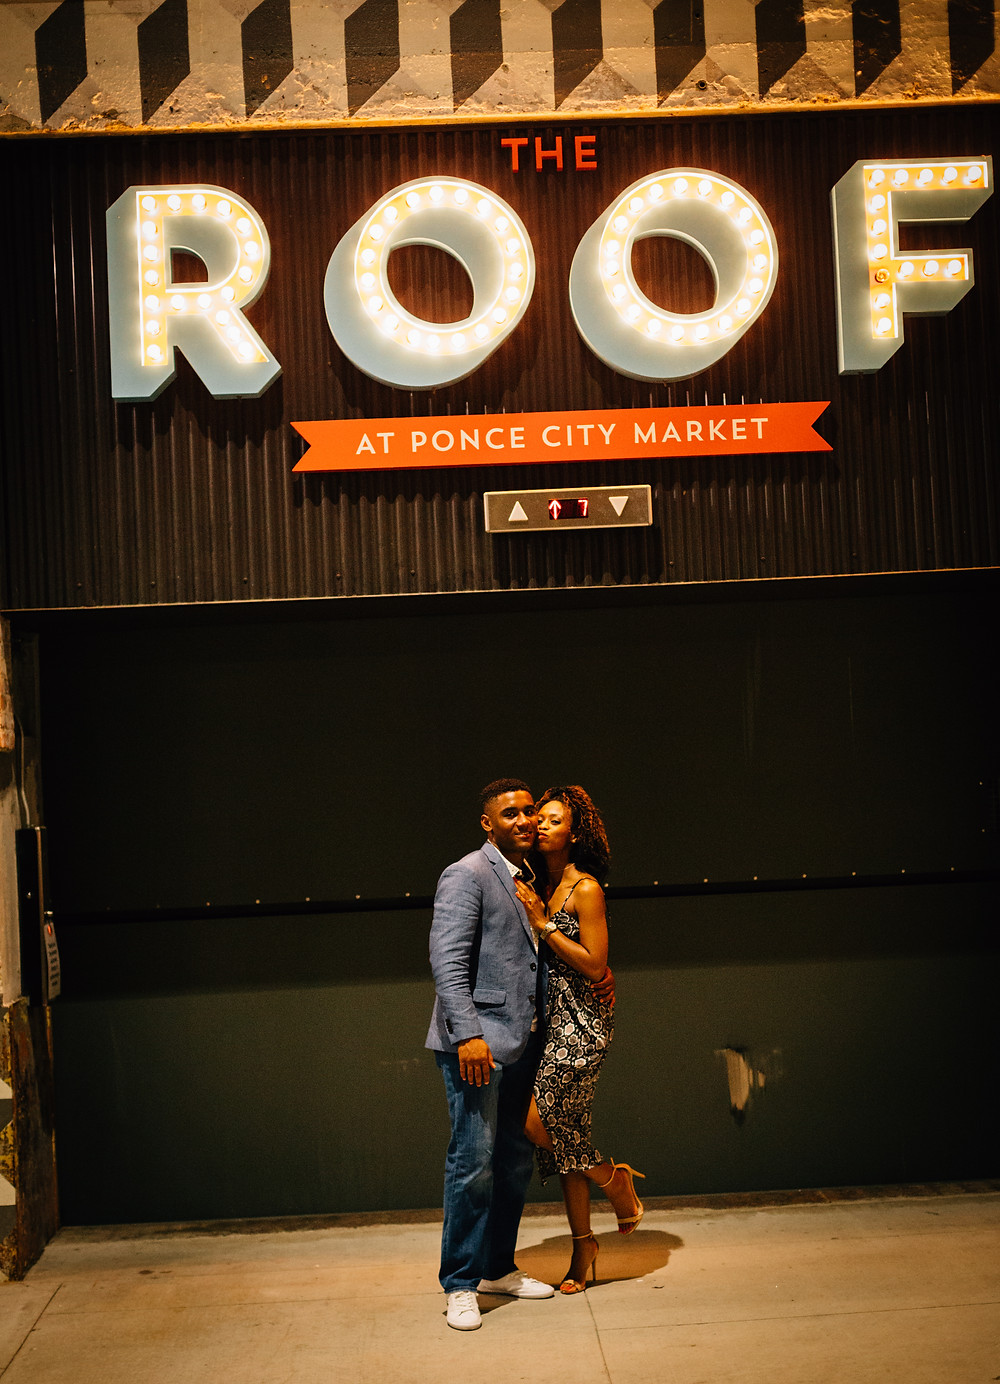 The Rooftop at Ponce City Market